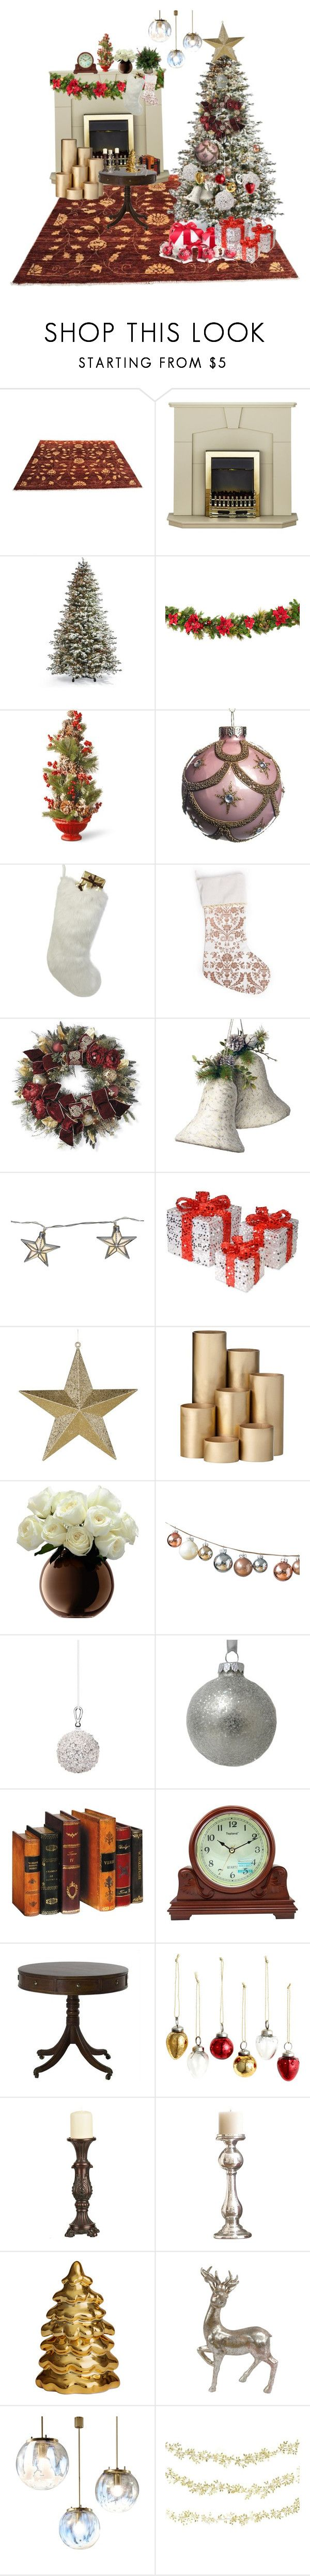 """""""Guardando film di natale"""" by alessiam95 ❤ liked on Polyvore featuring interior, interiors, interior design, home, home decor, interior decorating, Frontgate, National Tree Company, Helen Moore and Parlane"""